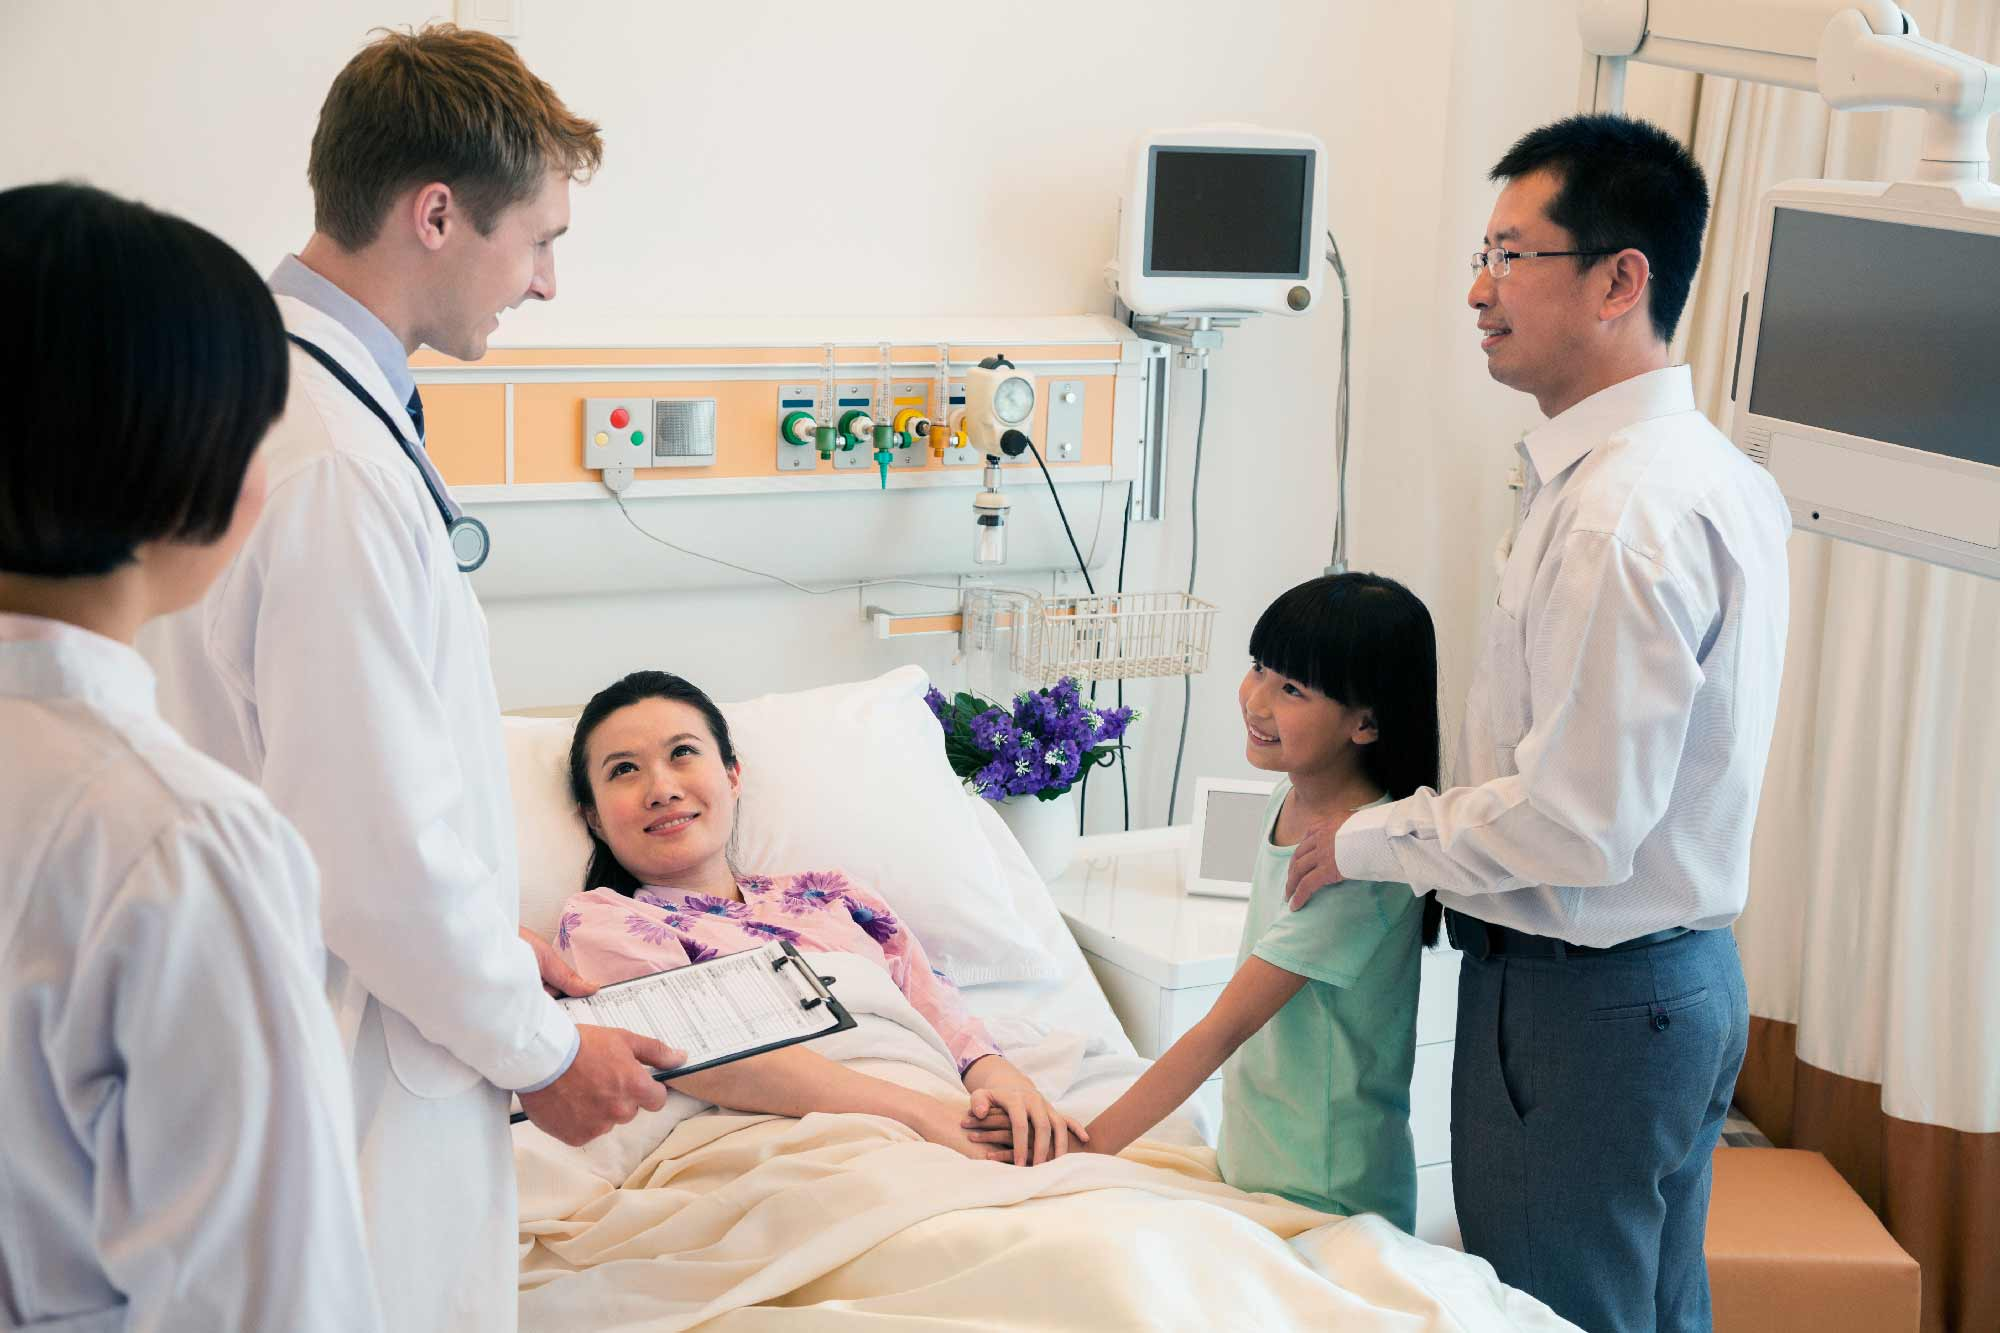 Medical professionals and family members around a person in a hospital bed